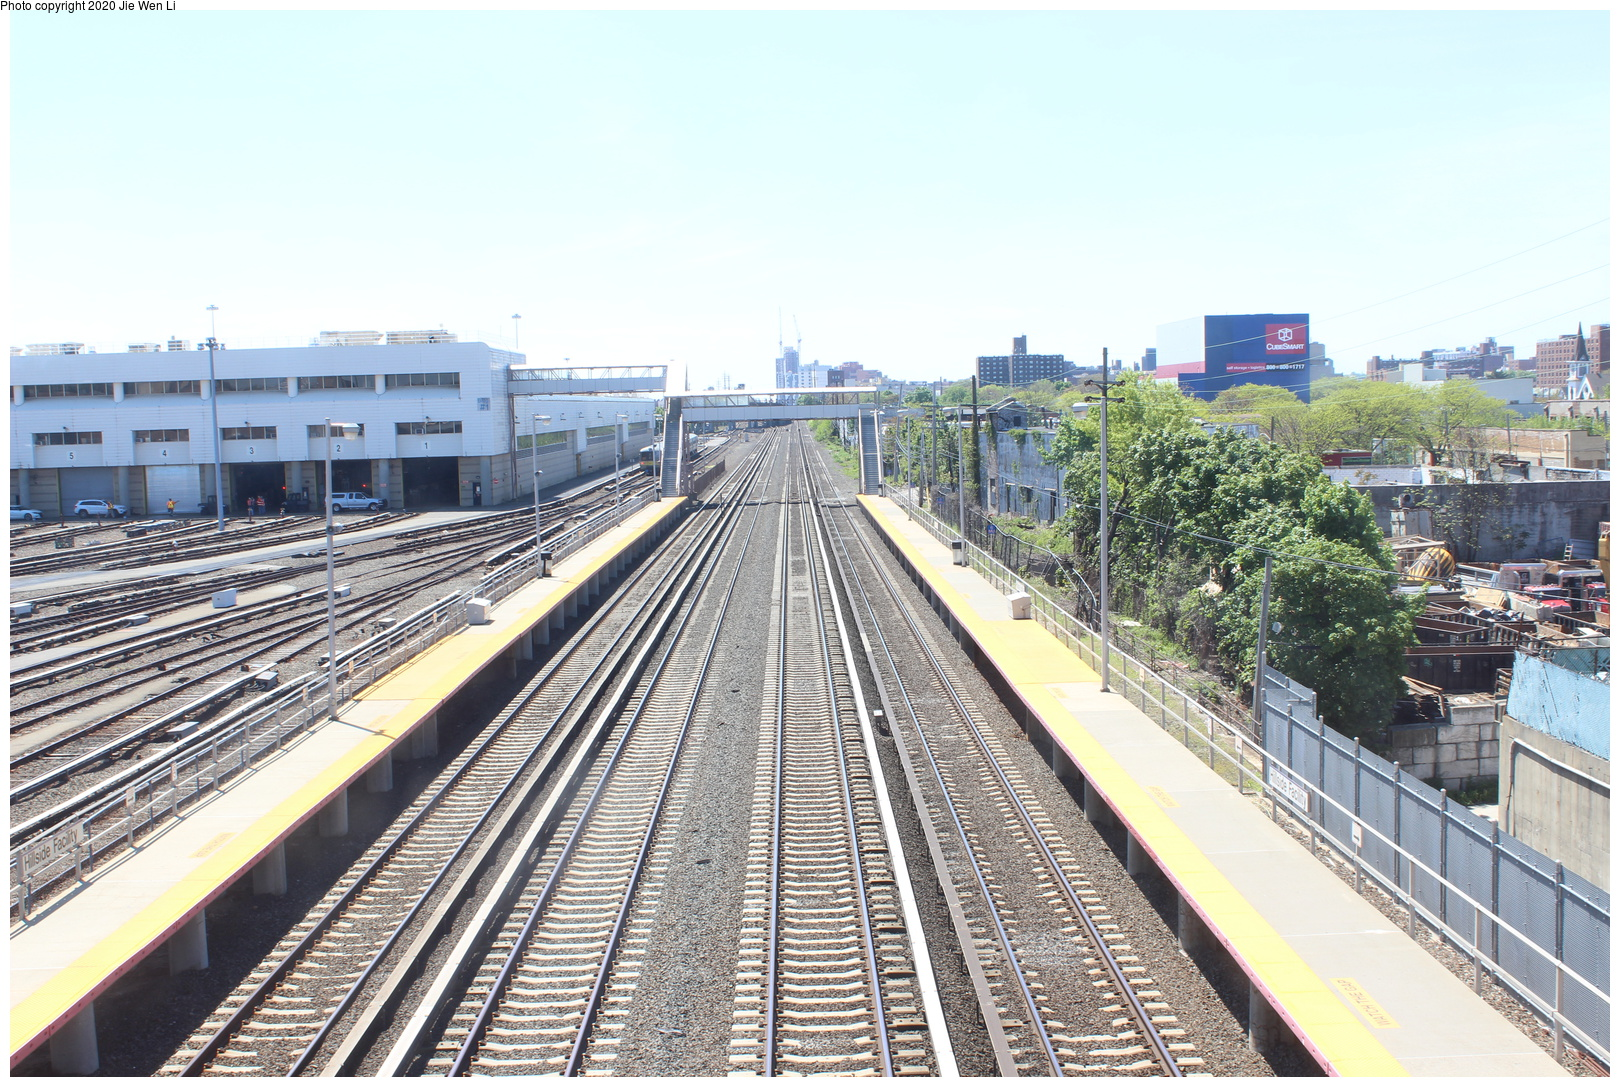 (213k, 1026x1044)<br><b>Country:</b> United States<br><b>City:</b> New York<br><b>System:</b> New York City Transit<br><b>Location:</b> East 180th Street Yard<br><b>Car:</b> Low-V 4932/5324 <br><b>Photo by:</b> Joel Shanus<br><b>Viewed (this week/total):</b> 2 / 692